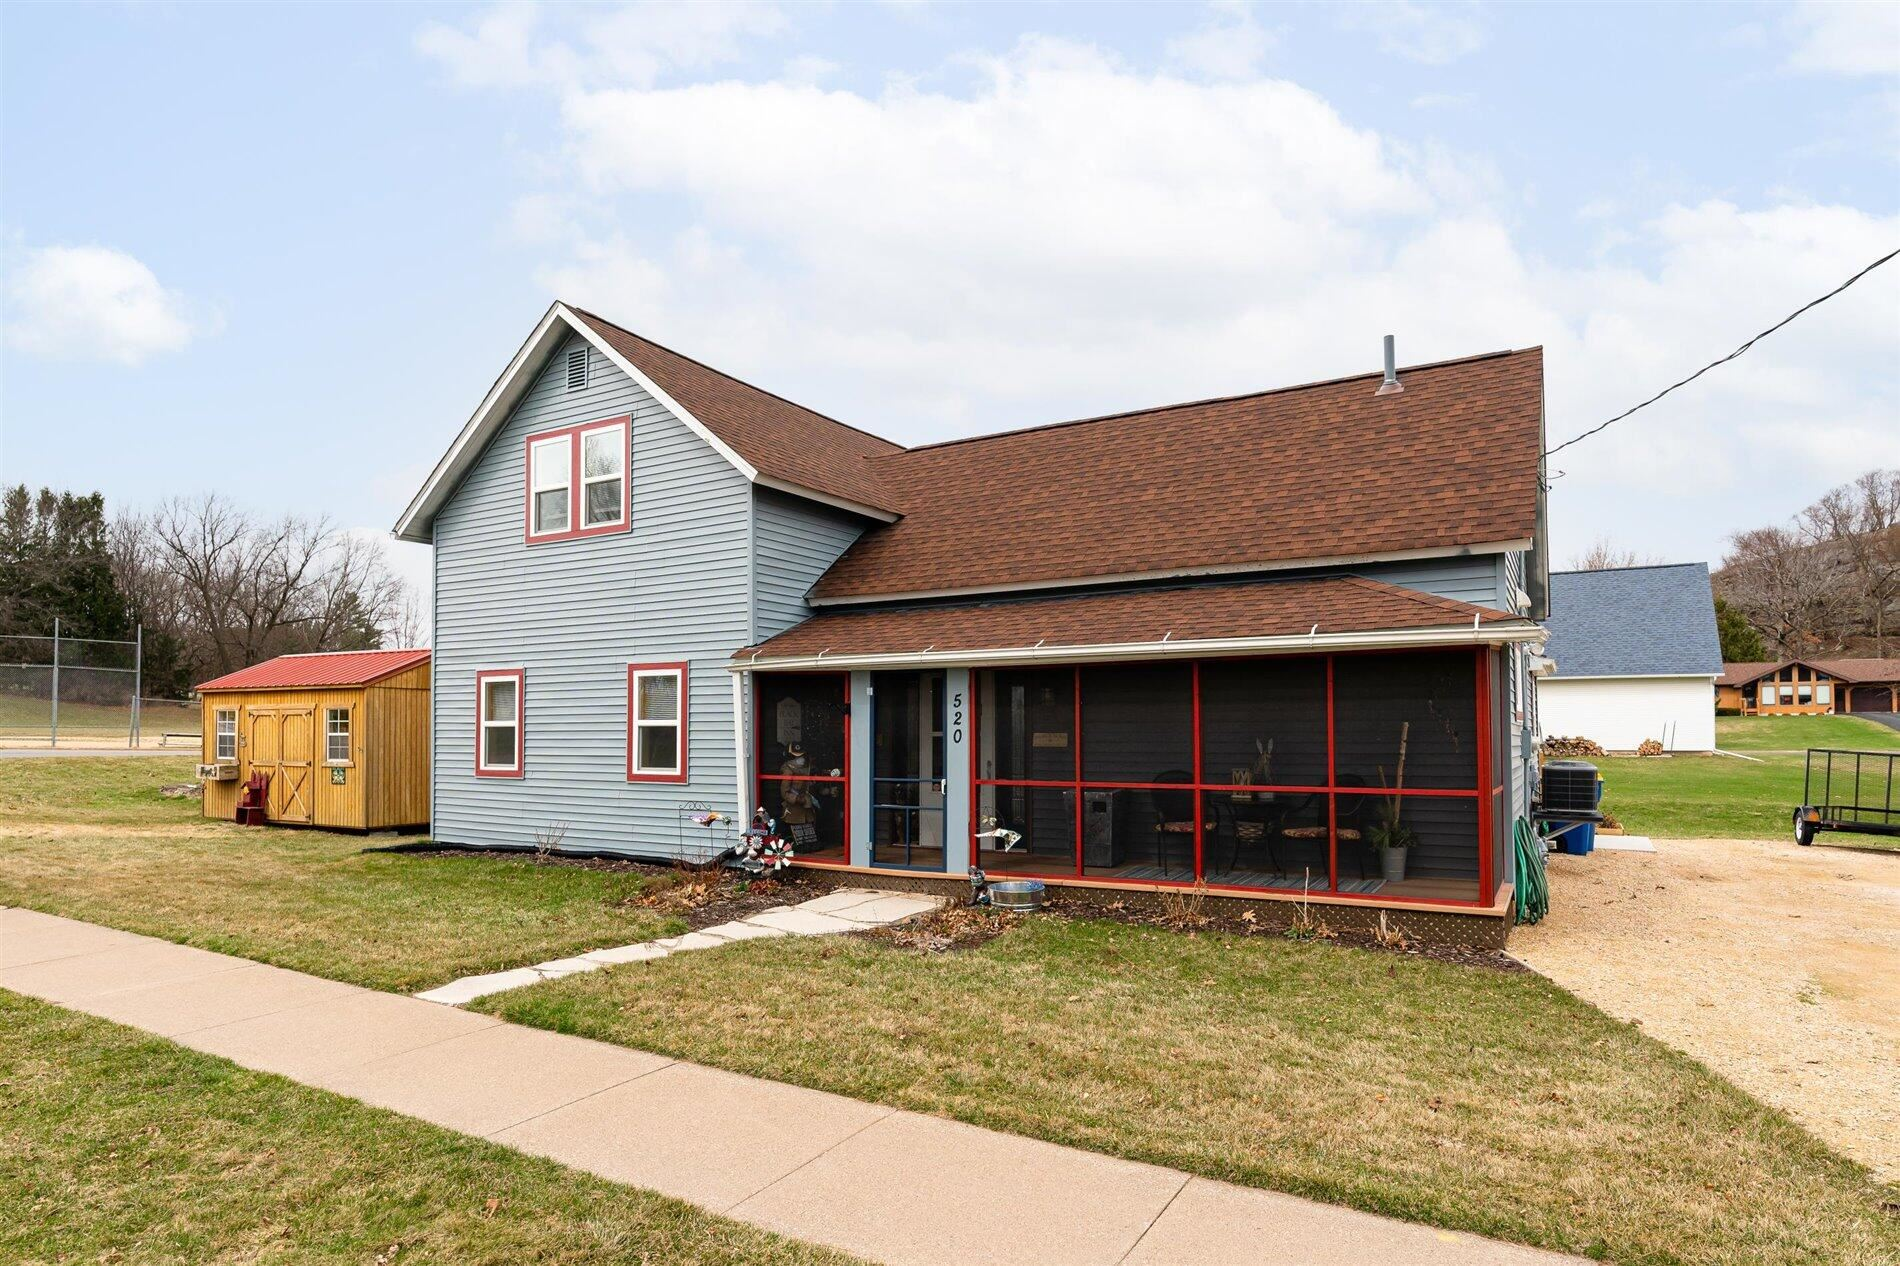 520 W South St, Viroqua, WI 54665 - MLS#: 1733240